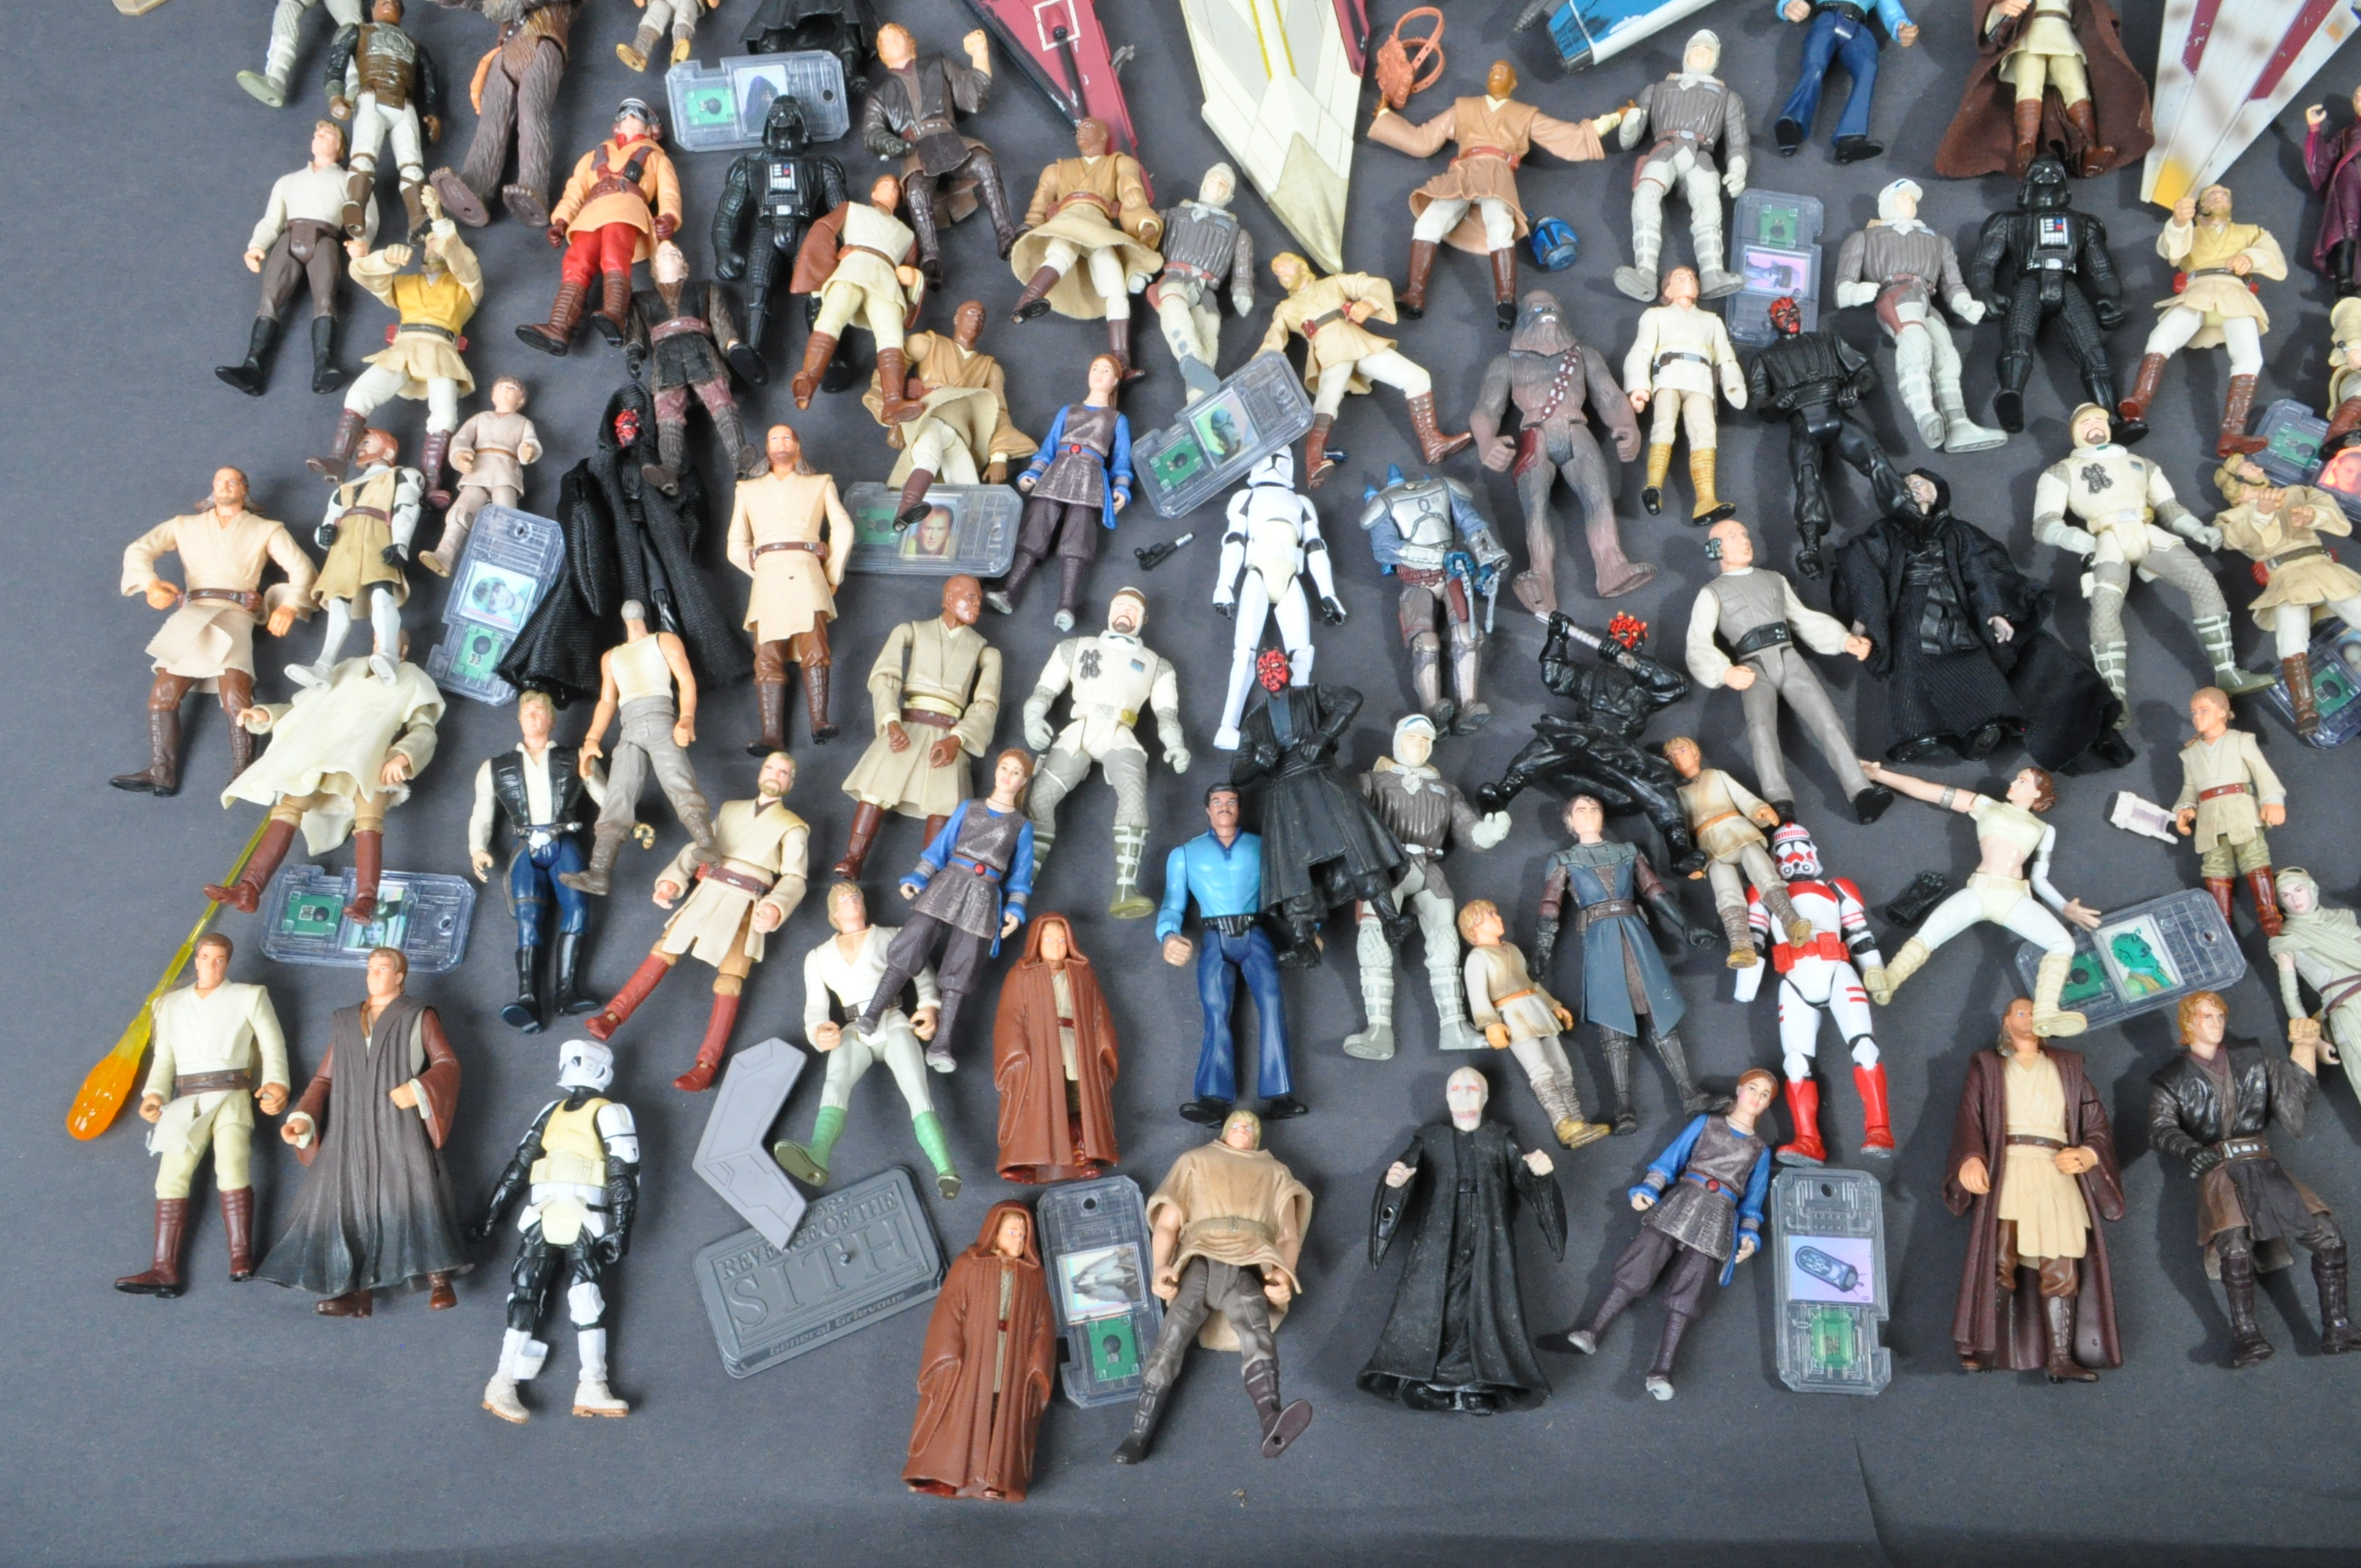 STAR WARS - LARGE COLLECTION KENNER / HASBRO CLONE WARS & OTHER FIGURES - Image 2 of 10